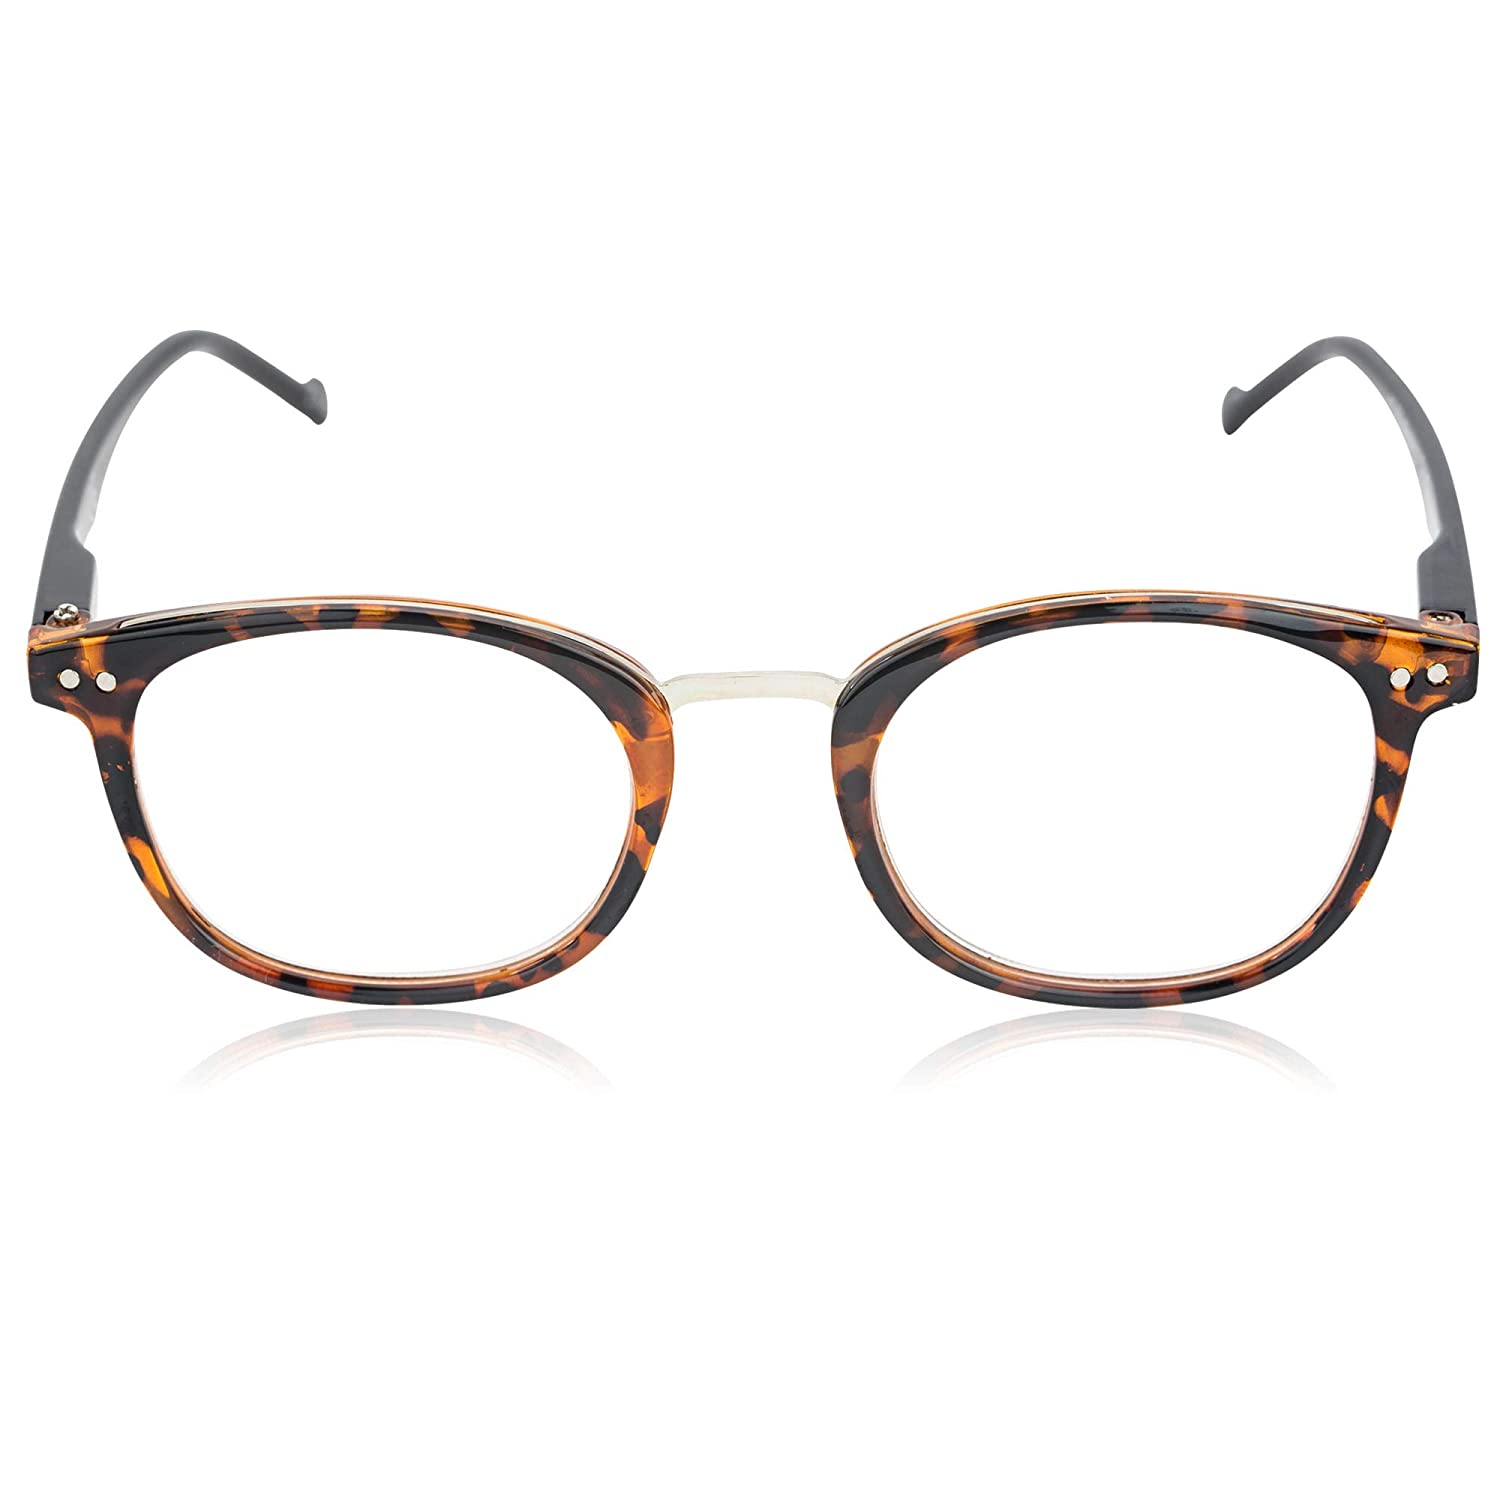 In Style Eyes Modern Oval Clear Frame Readers